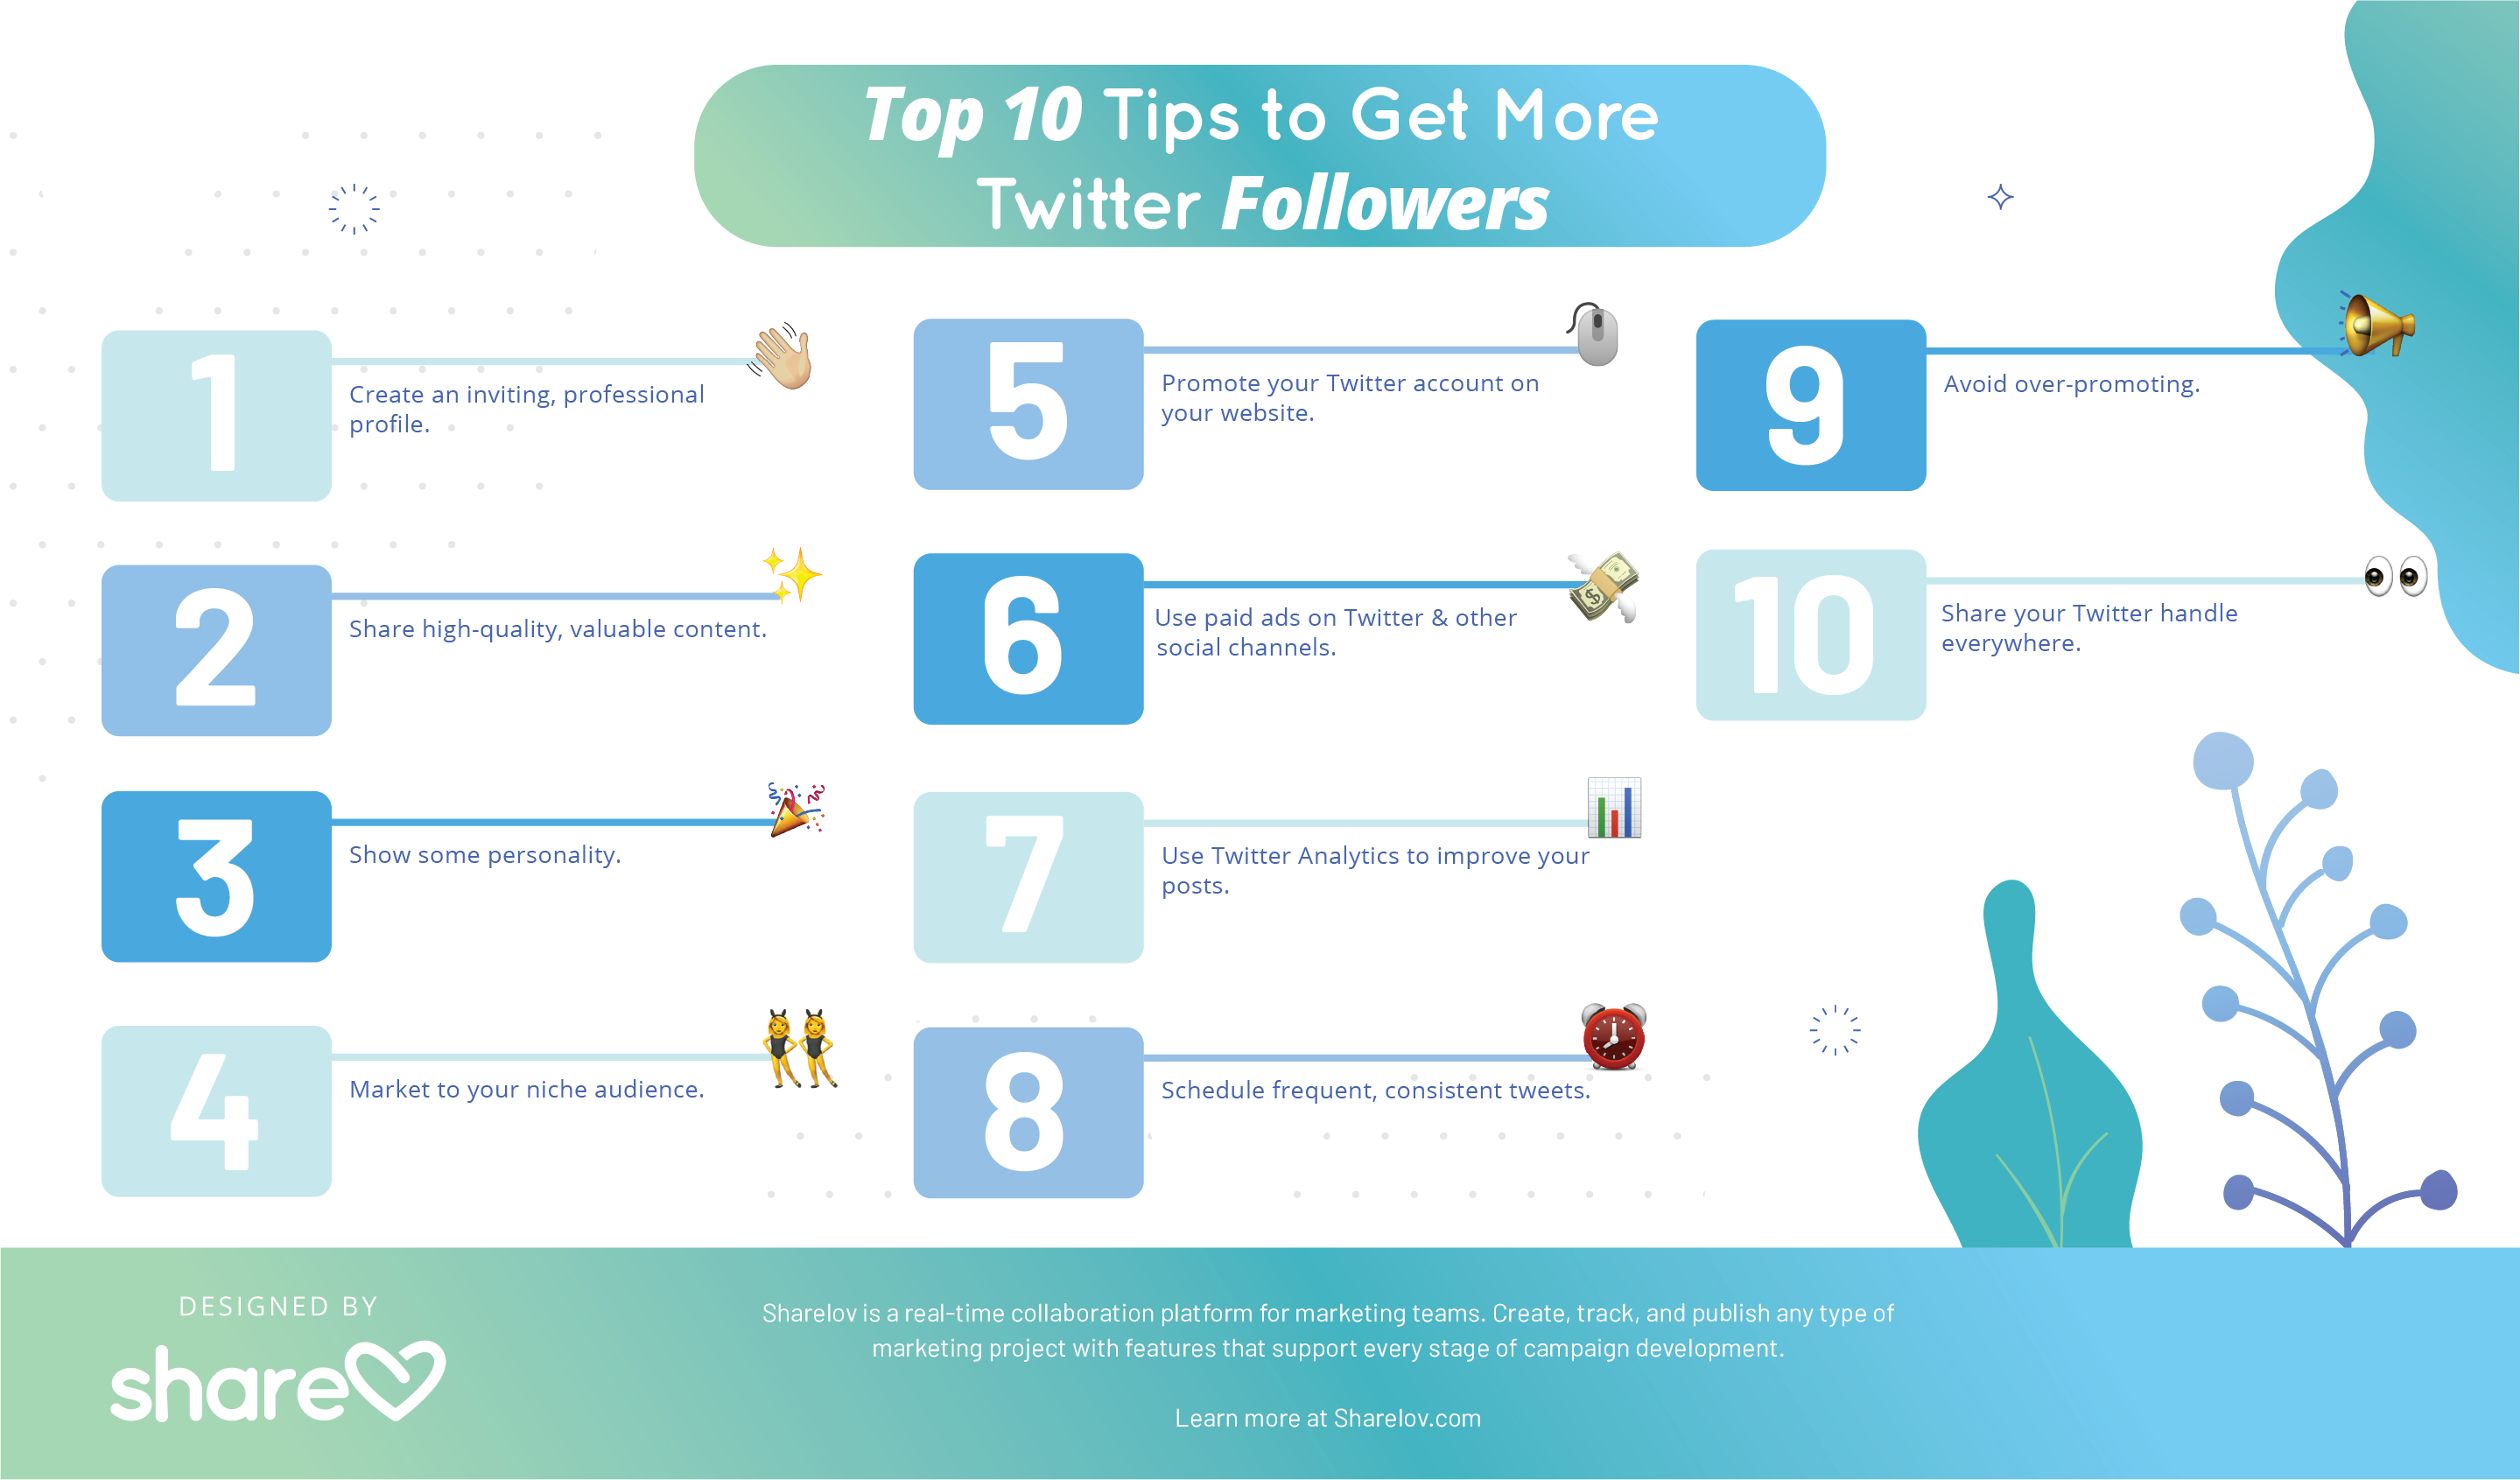 Top 10 Tips for getting more Twitter Followers infographic